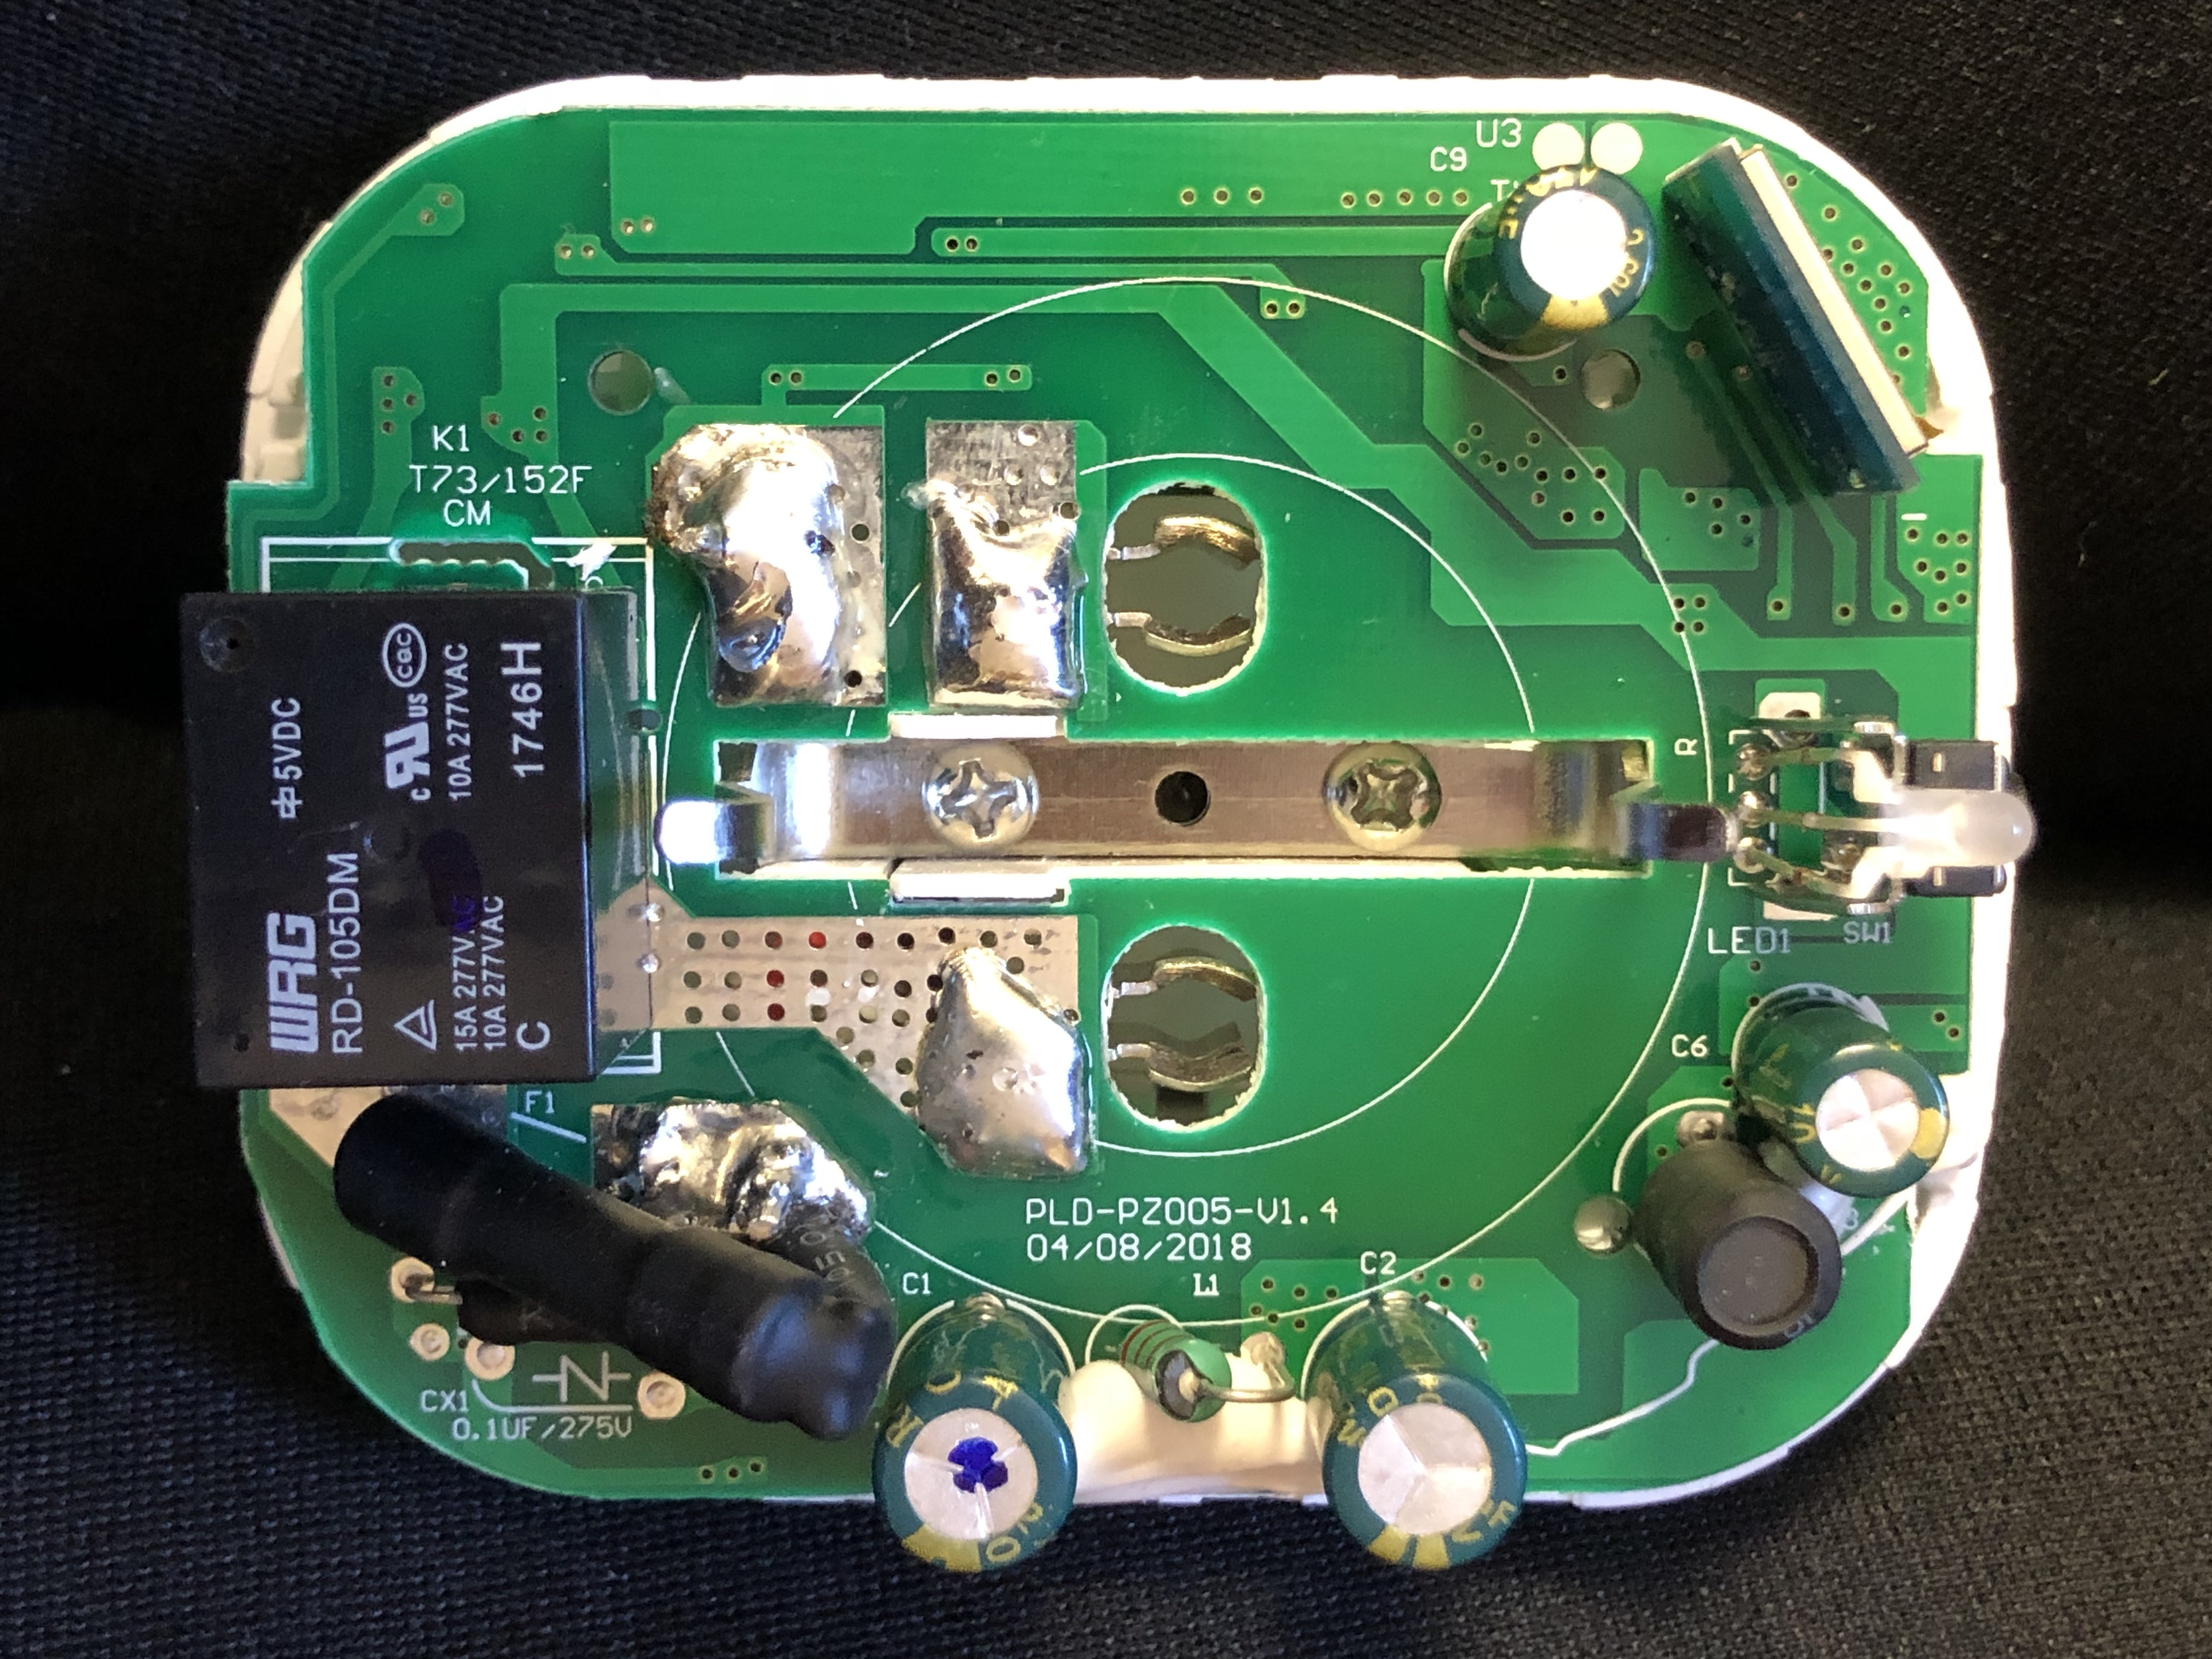 New Hardware Teckin Sp22 V14 Issue 3950 Arendst Sonoff Tasmota Possibly Related To Quotsimple Ac Light Bulb Flasherquot Circuits Img 7789